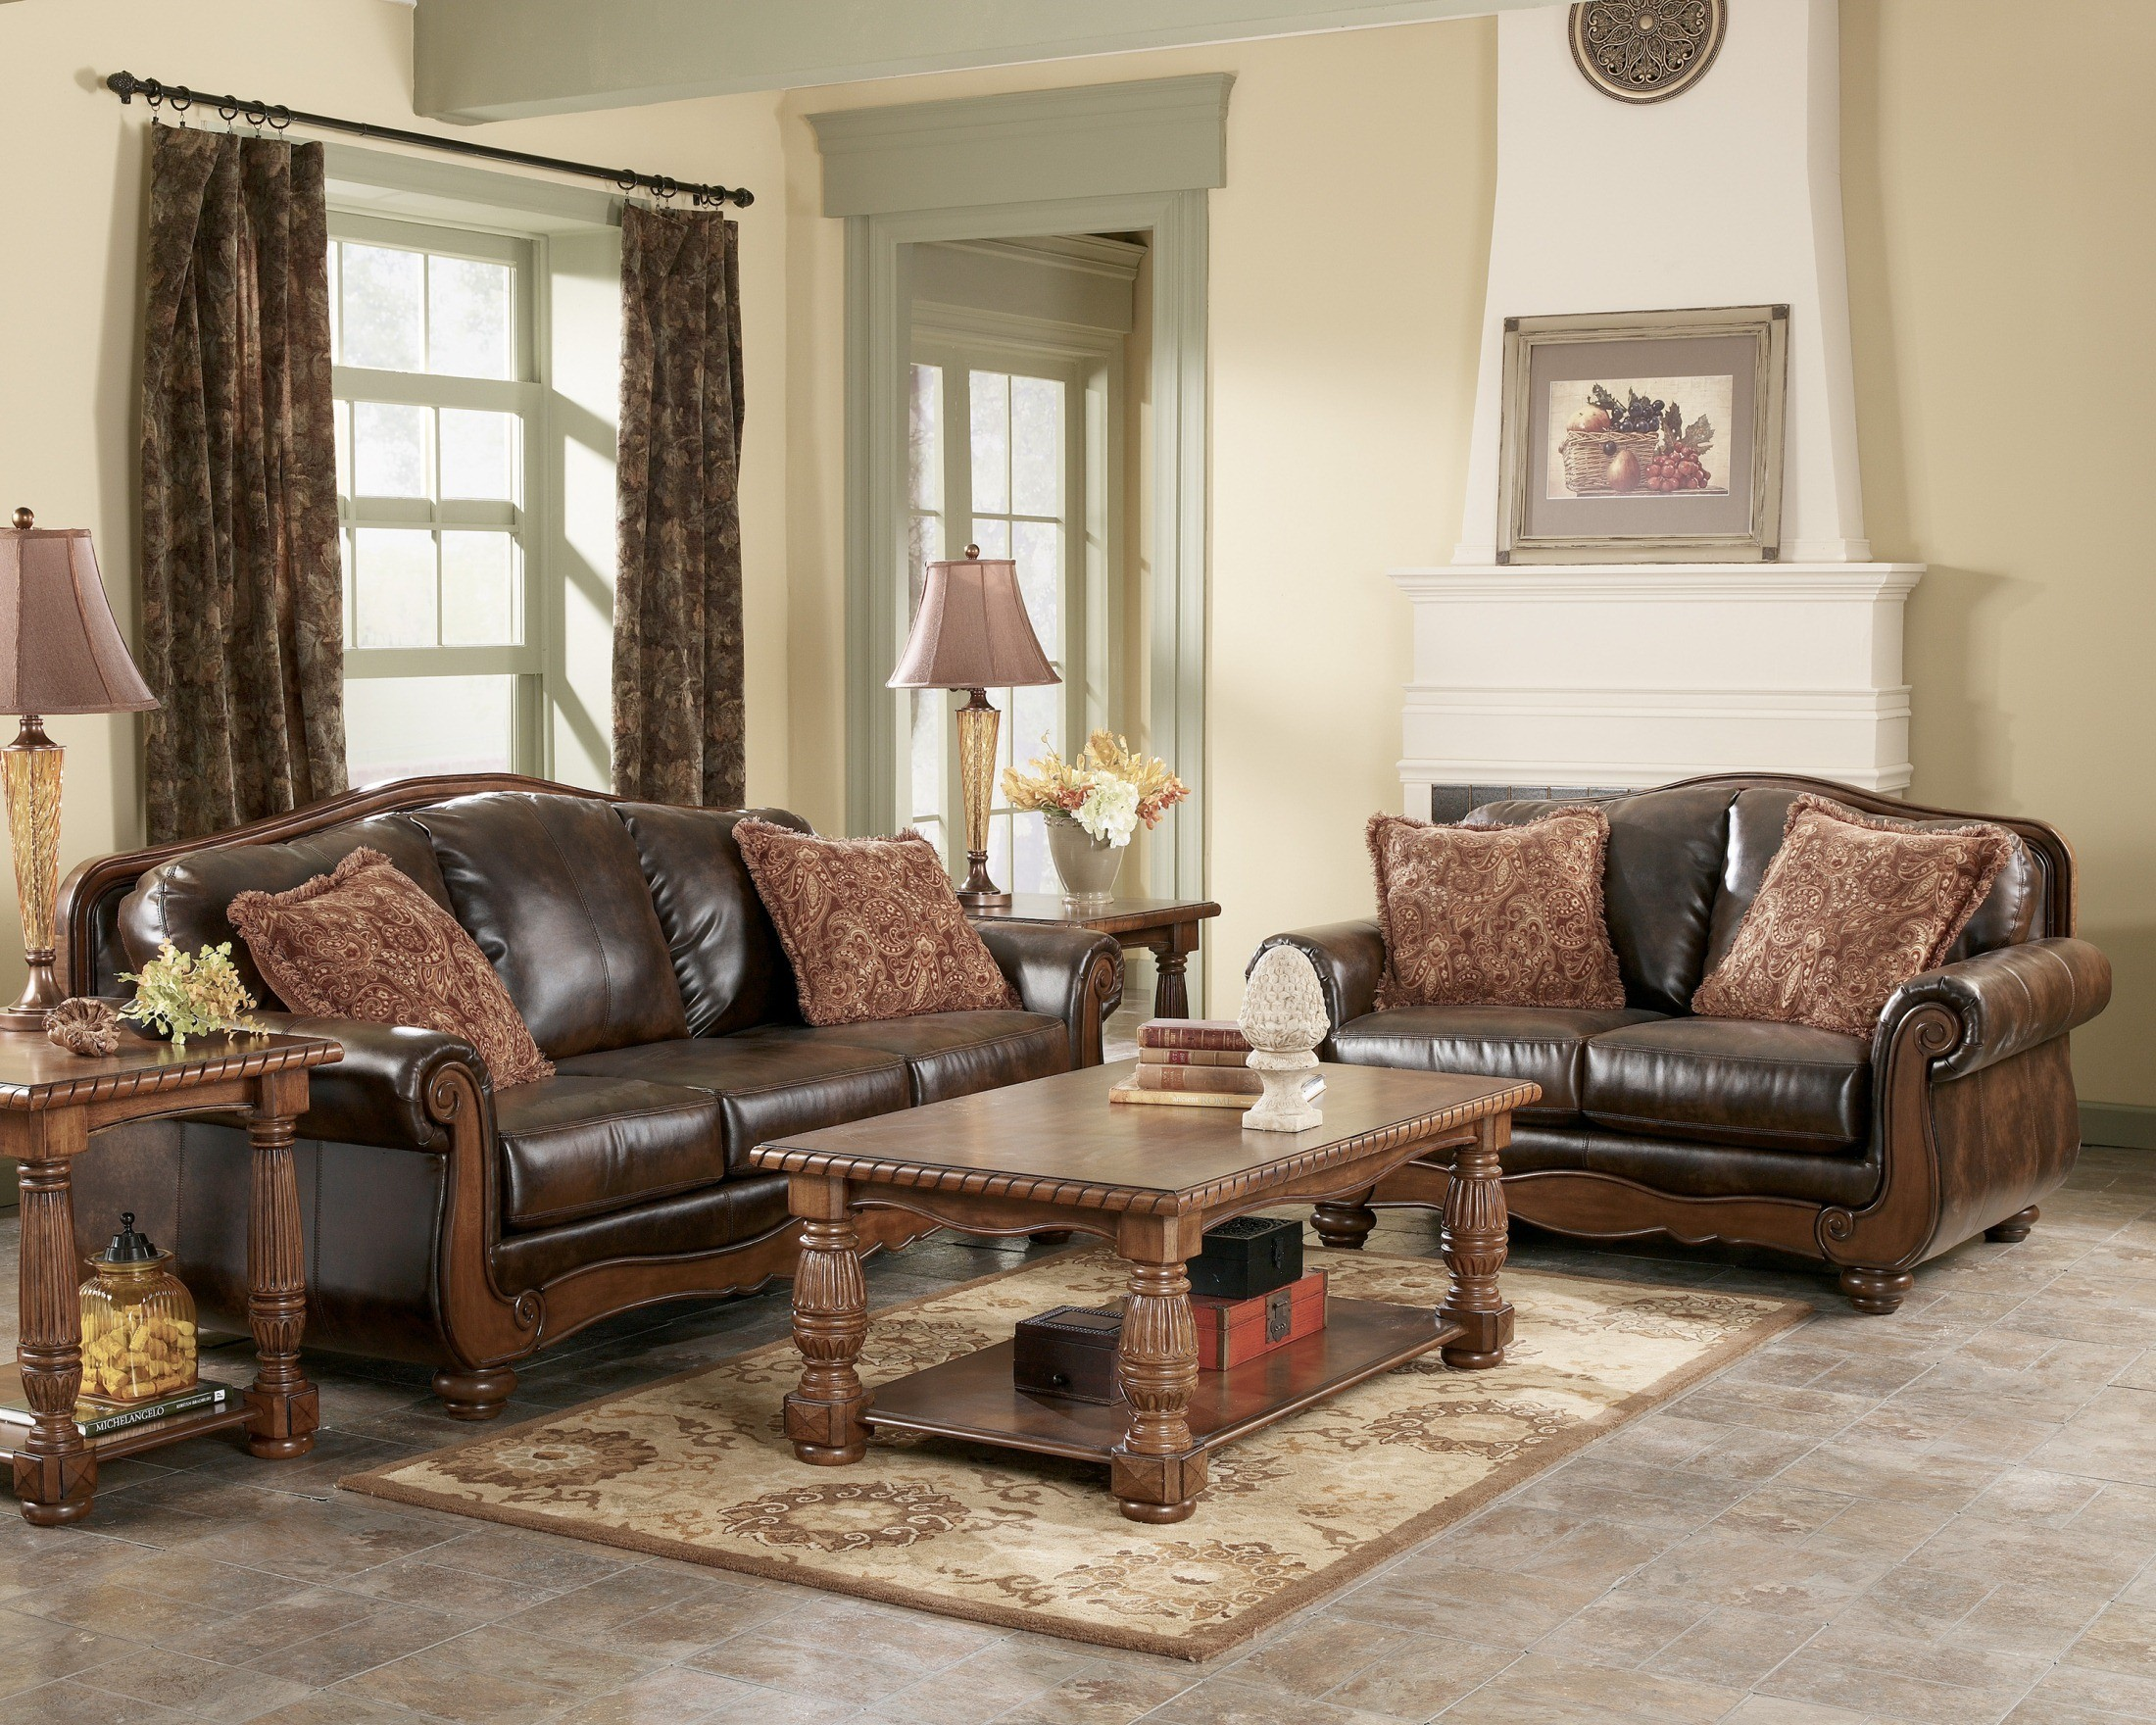 living room antique furniture barcelona antique living room set from 55300 16428